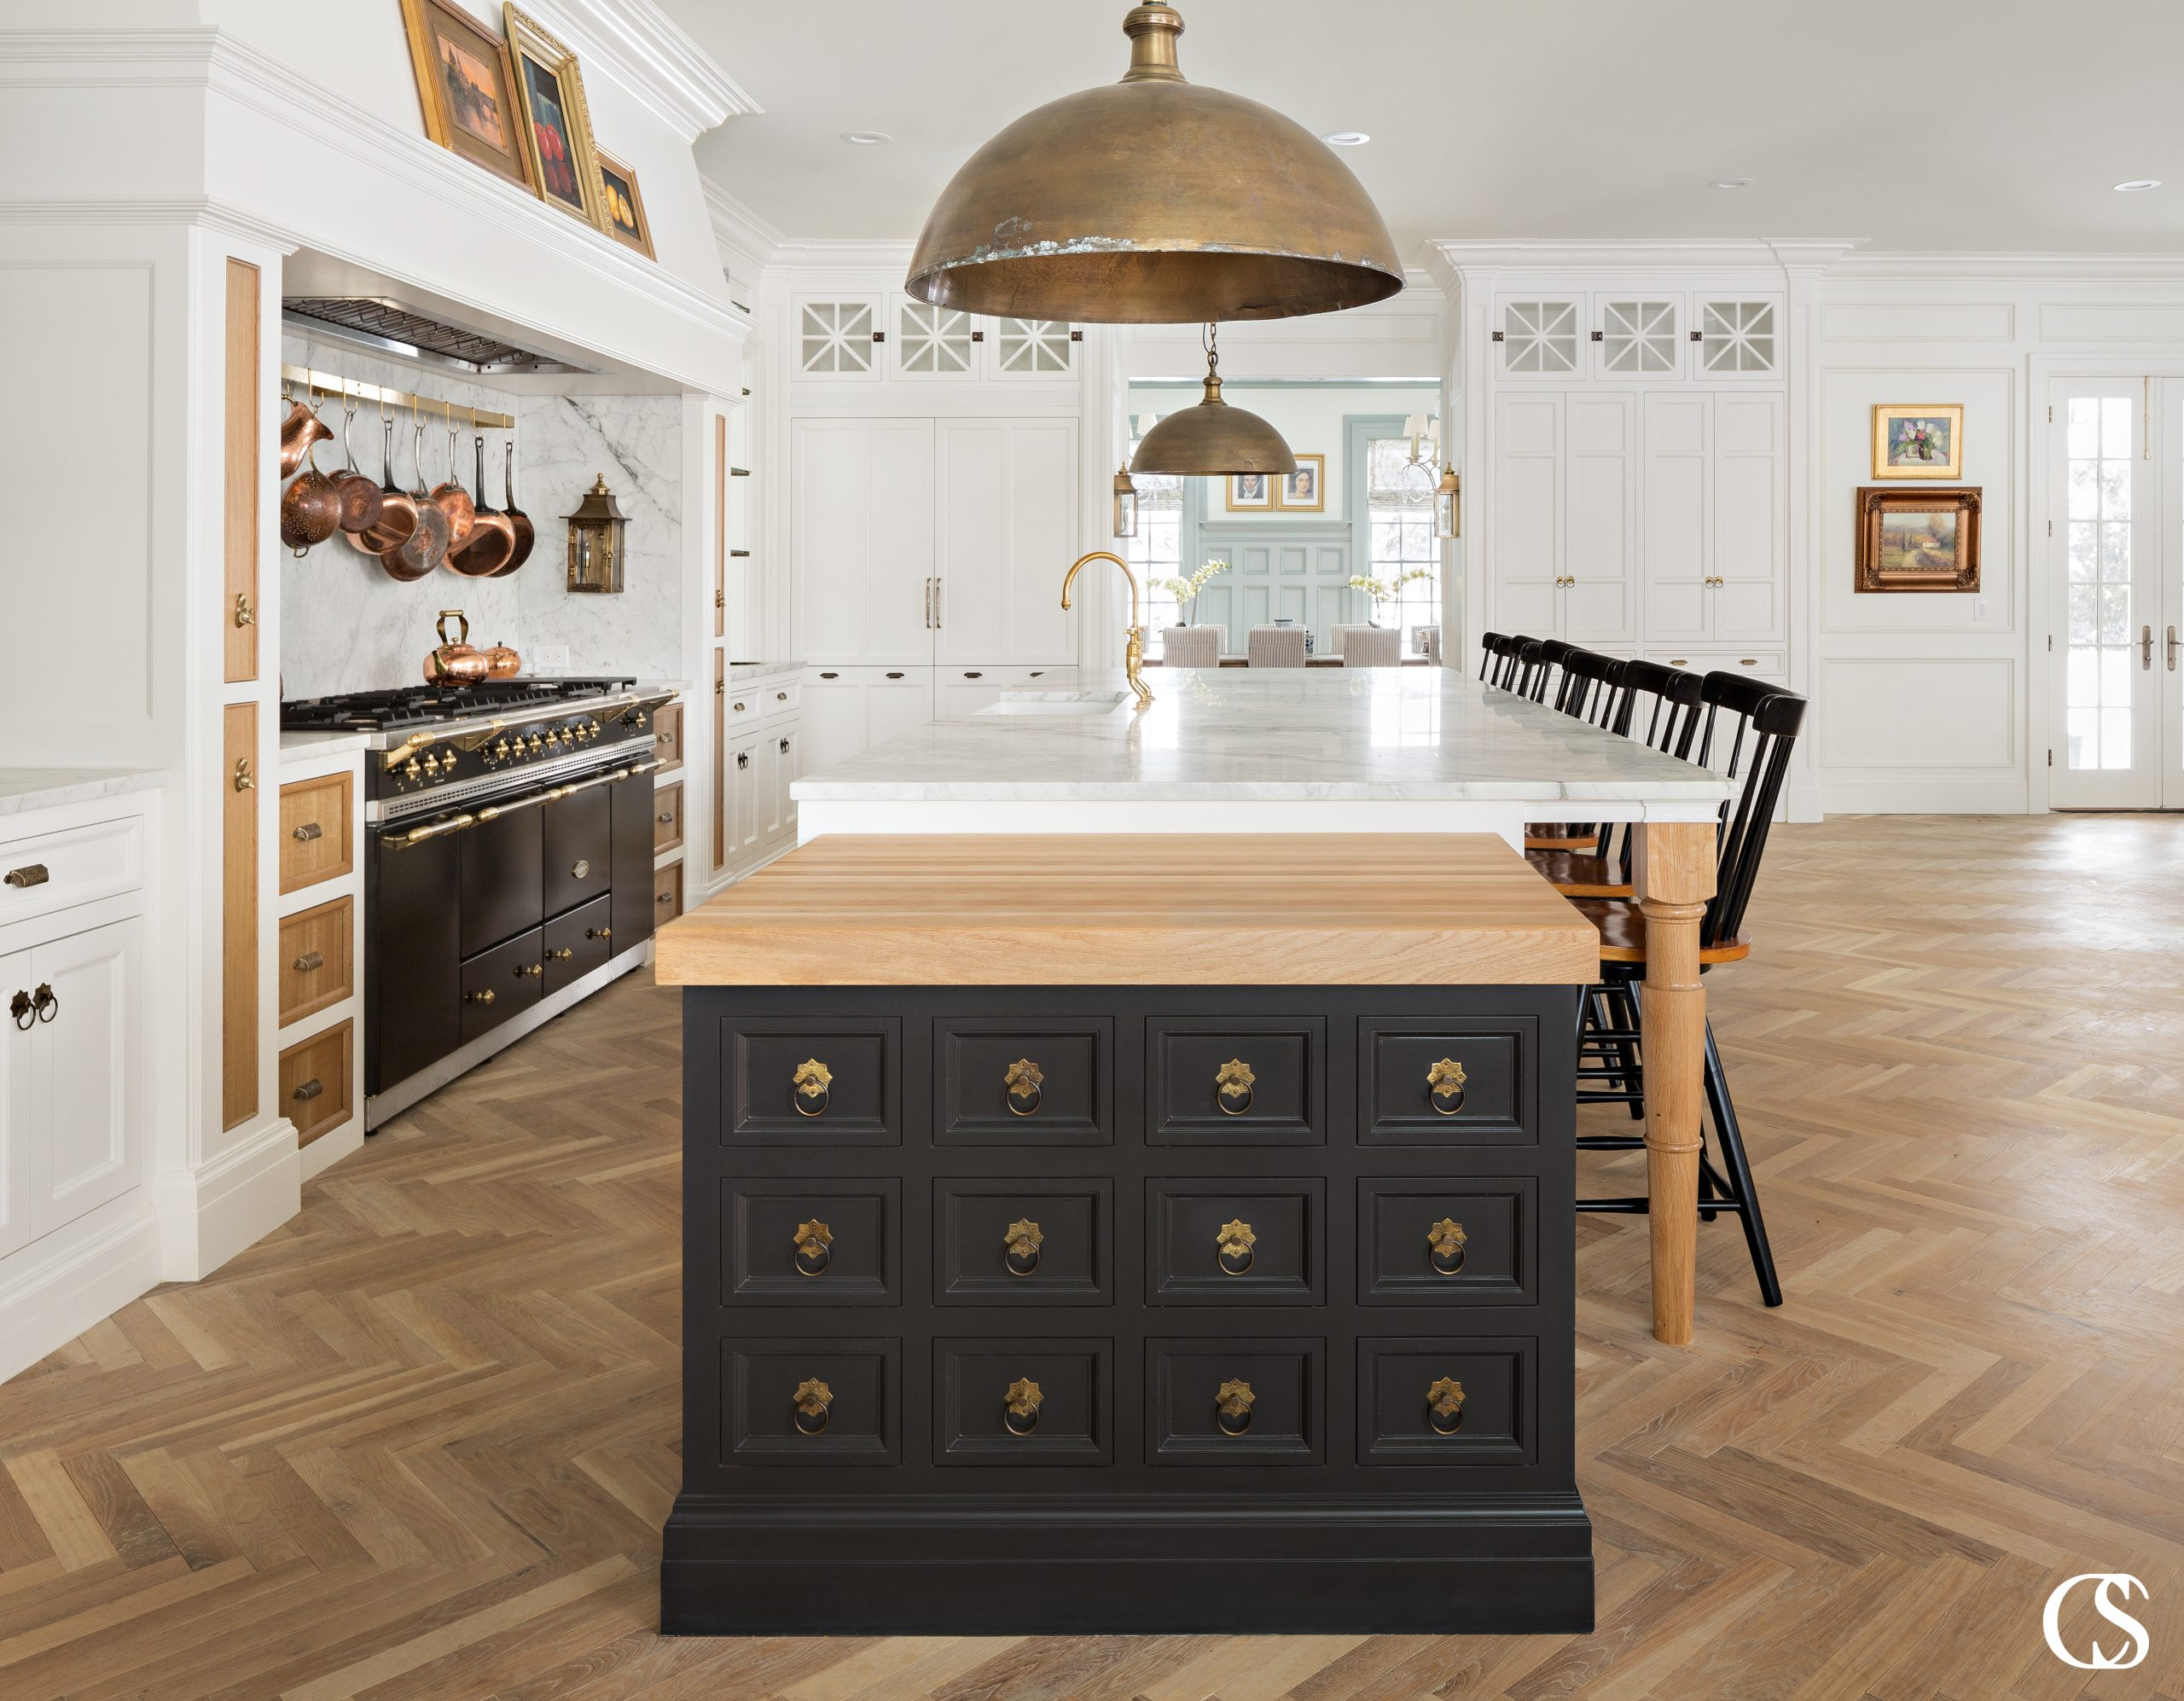 A kitchen island can have a powerful impact on your home. This unique kitchen island design combines multiple colors, materials, and global influence to reflect a beautifully eclectic style.